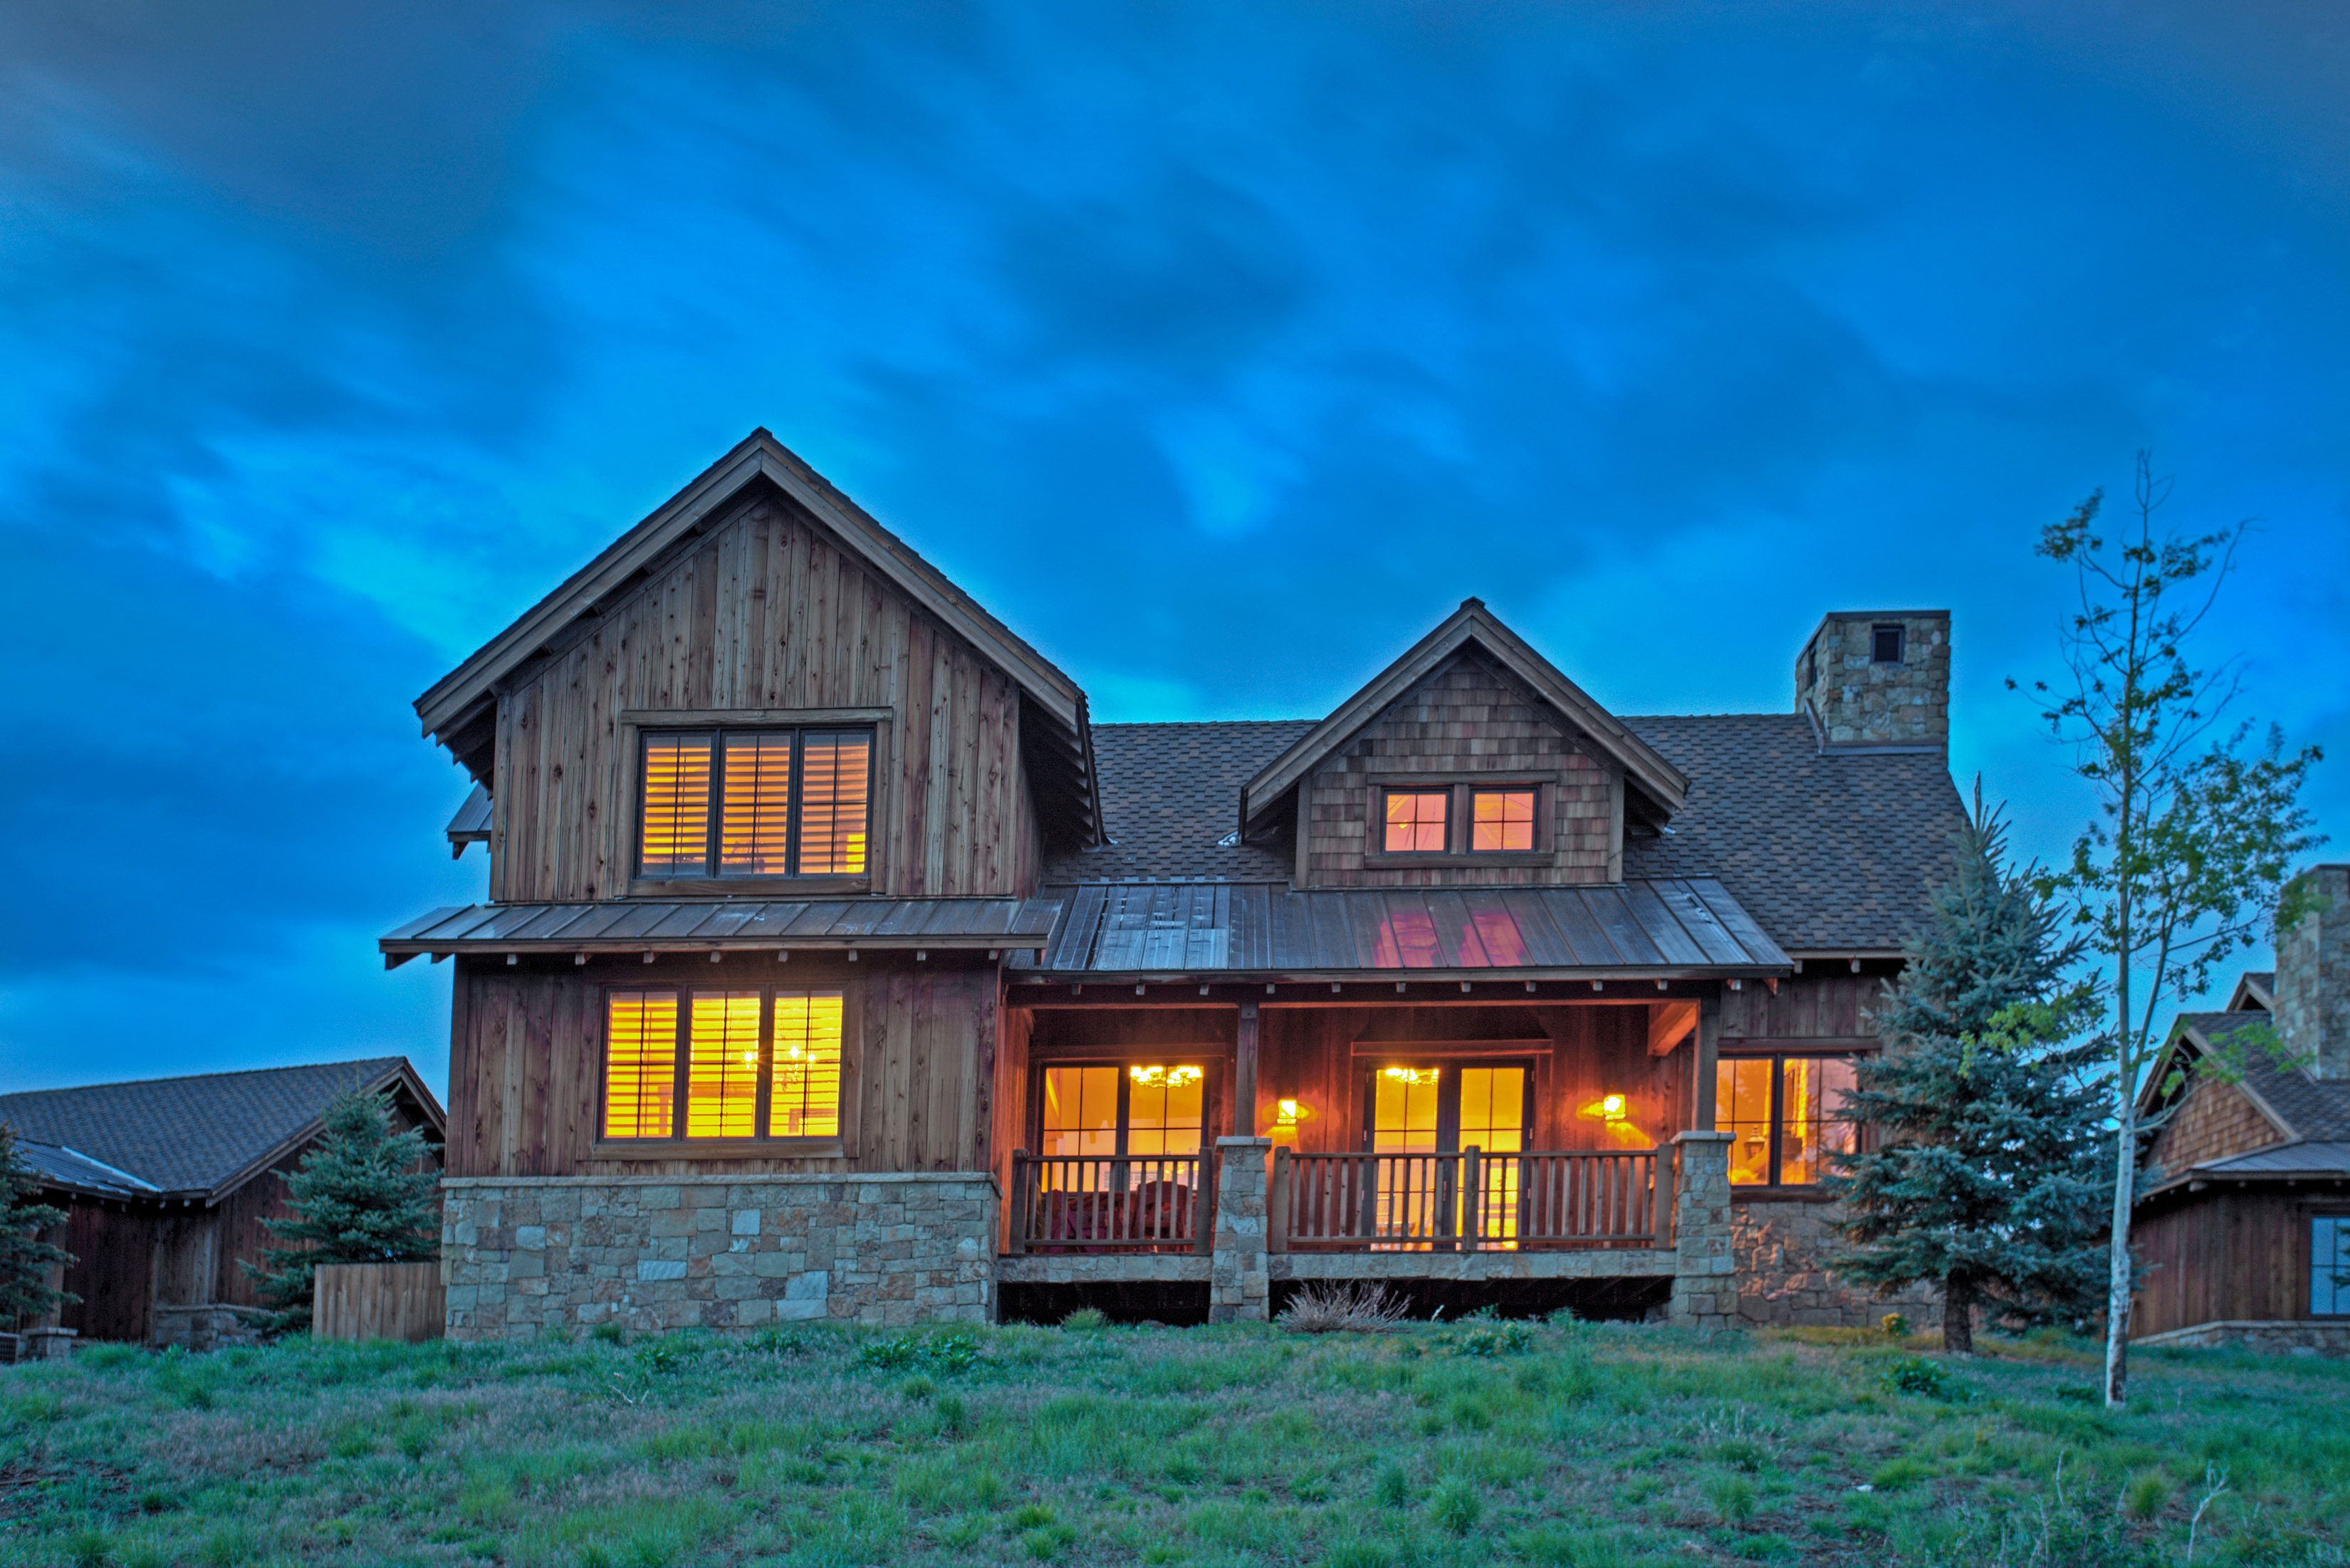 club cabins utah property red n ledges for real estate sale court